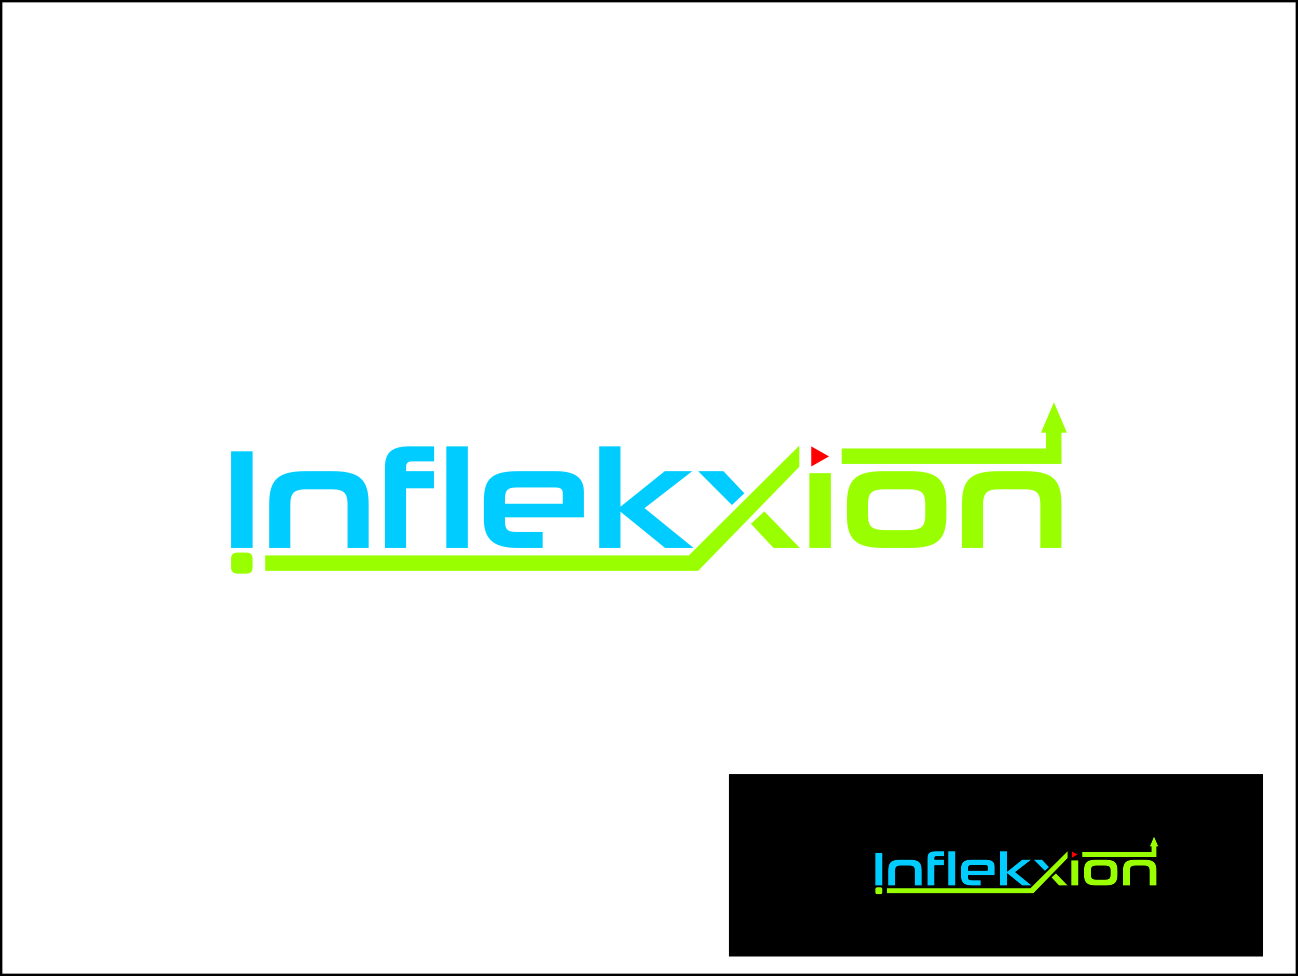 Logo Design by Agus Martoyo - Entry No. 57 in the Logo Design Contest Professional Logo Design for Inflekxion.